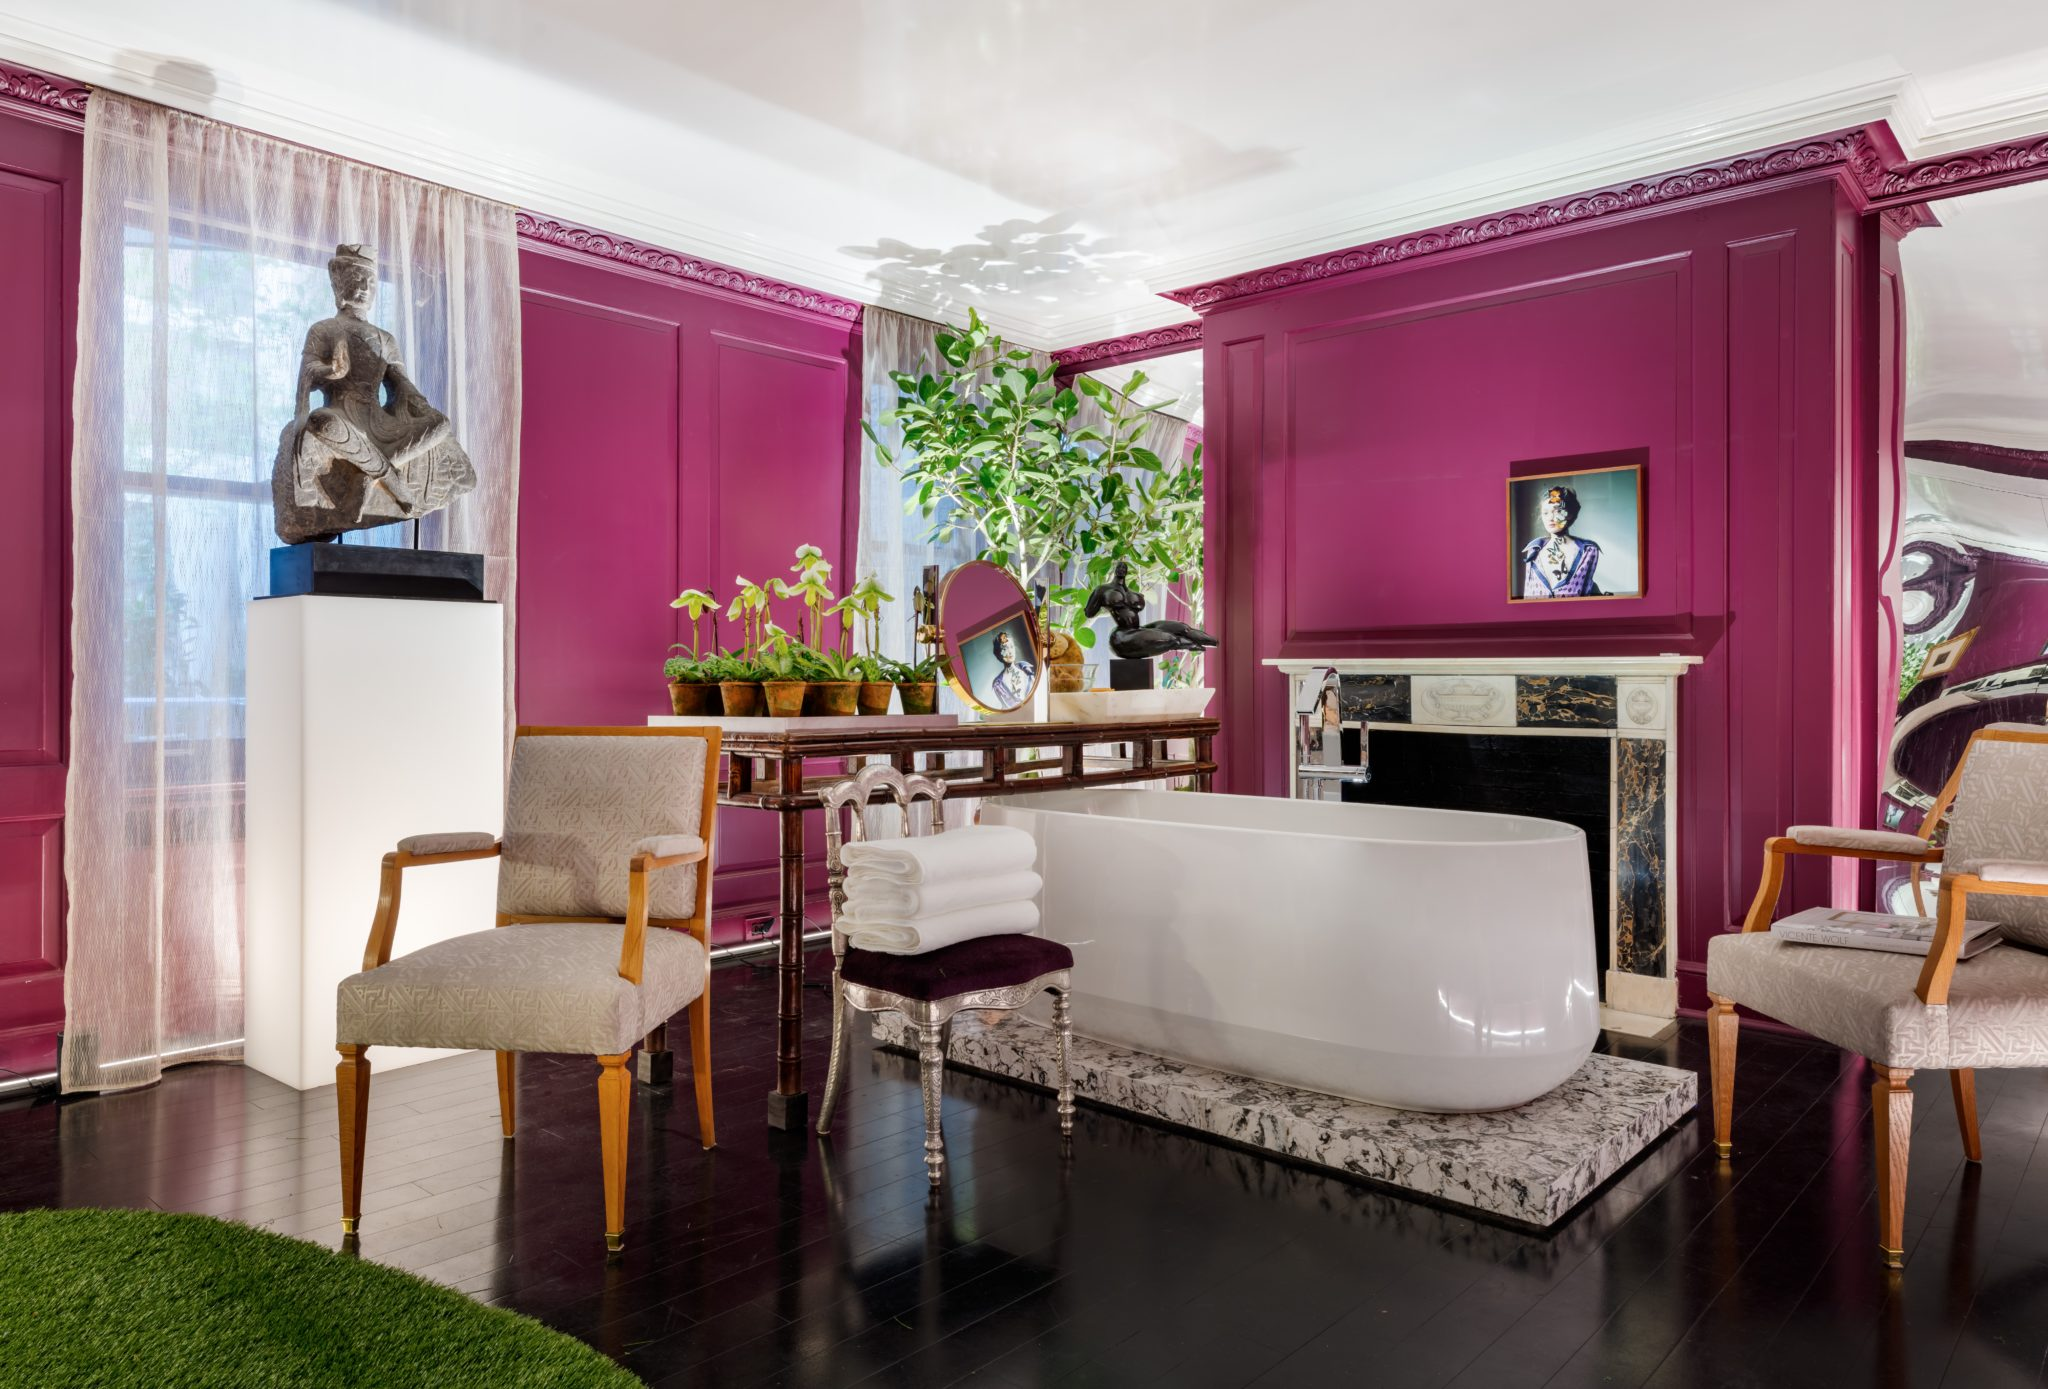 """In the """"Dreaming Room,""""Vicente Wolf Associates, designed a decadent, aubergine bathing space, in which creative accessories hone a surreal quality in the room andbacklitsheer drapesfrom The Shade Storeenhance its softness."""